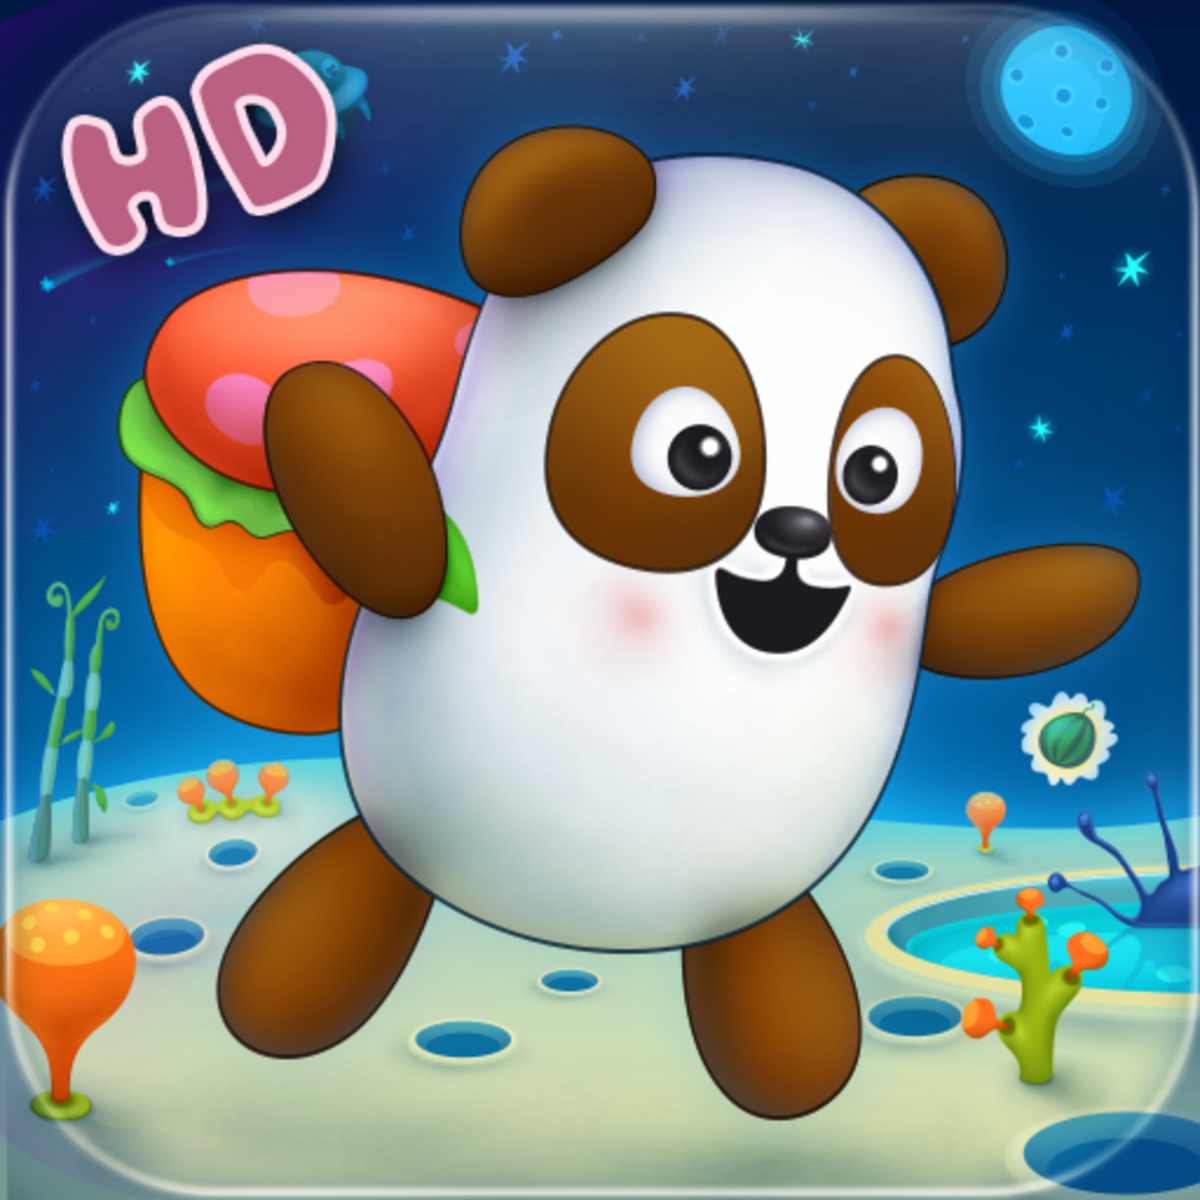 Мобильная iOS-игра Panda Sweet Tooth HD / Проект компании ТАРГЕТИНГ